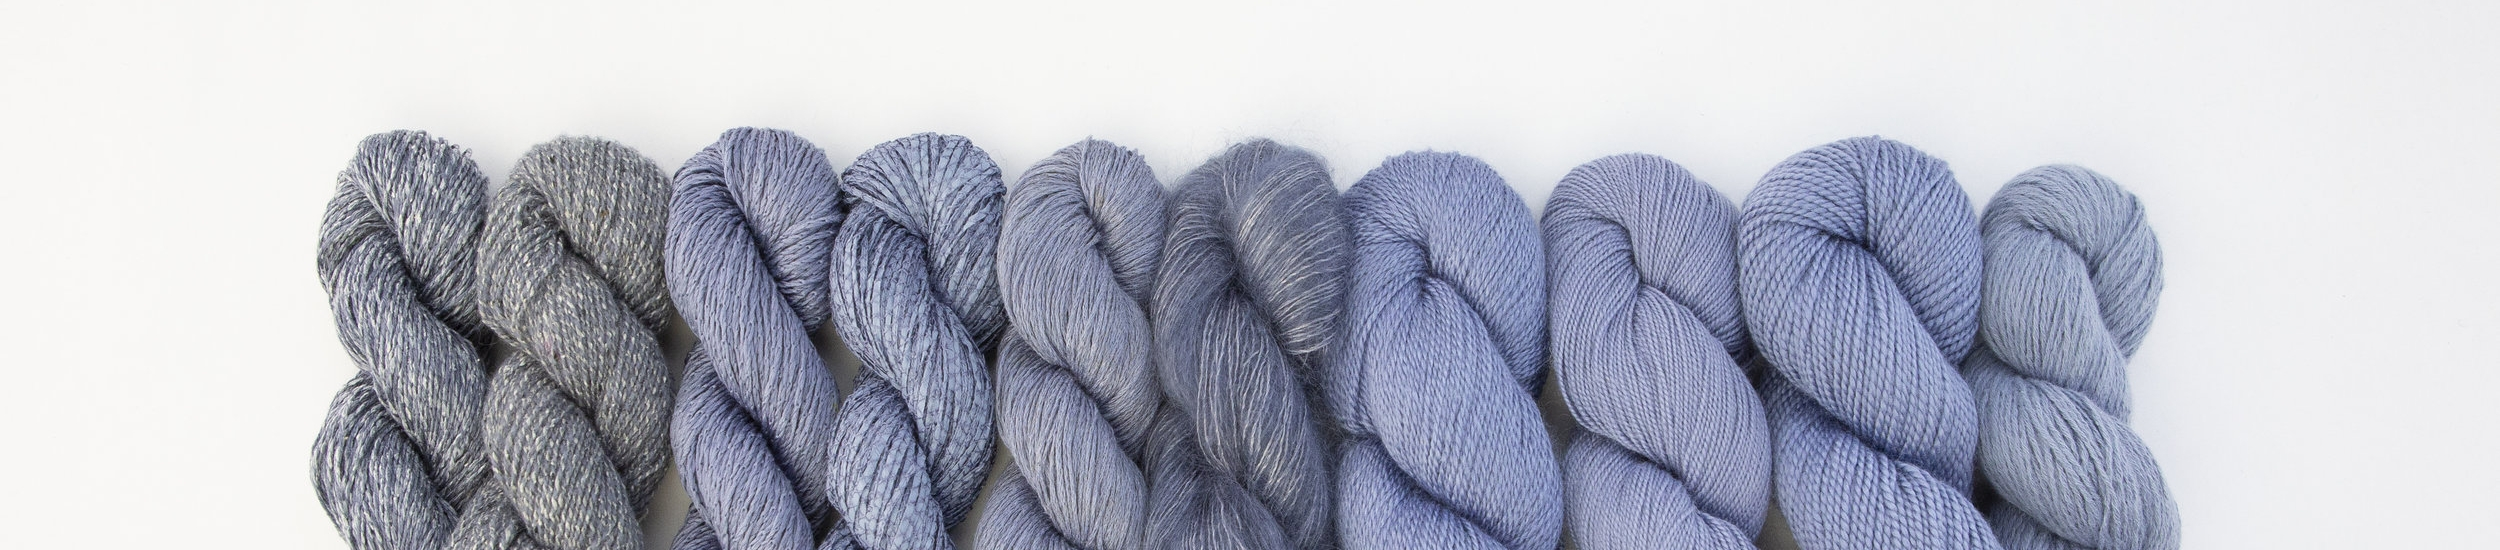 Yarn-Group-Shot-Twilight.jpg